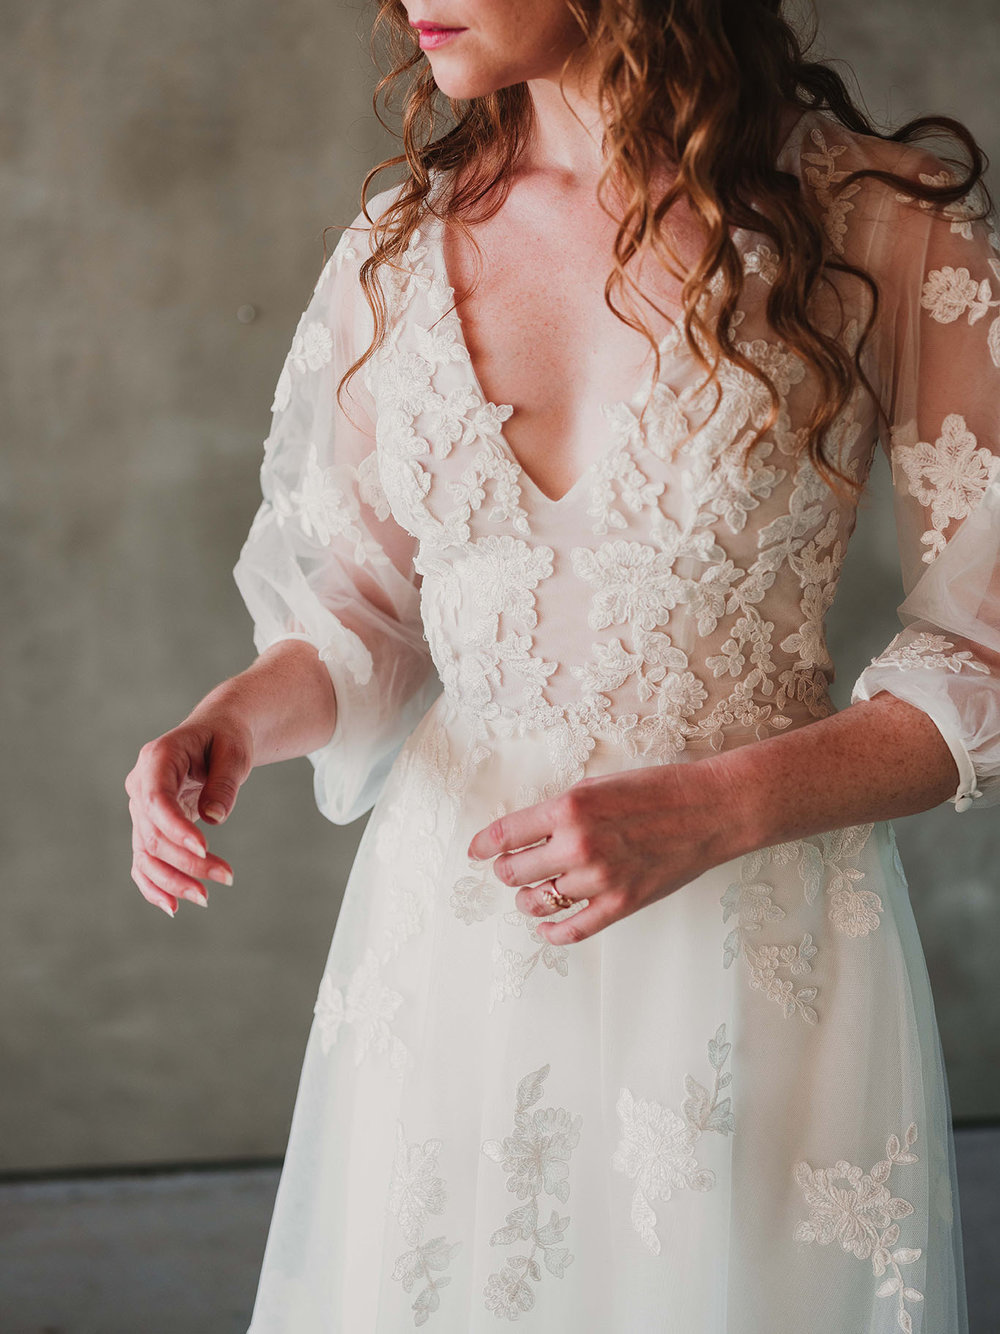 badice_detail_Rebecca_Schoneveld_Beau_Gown_Removable_Overskirt_romantic_clean_gown_applique_Tulle_crepe_juliet_sleeve.jpg